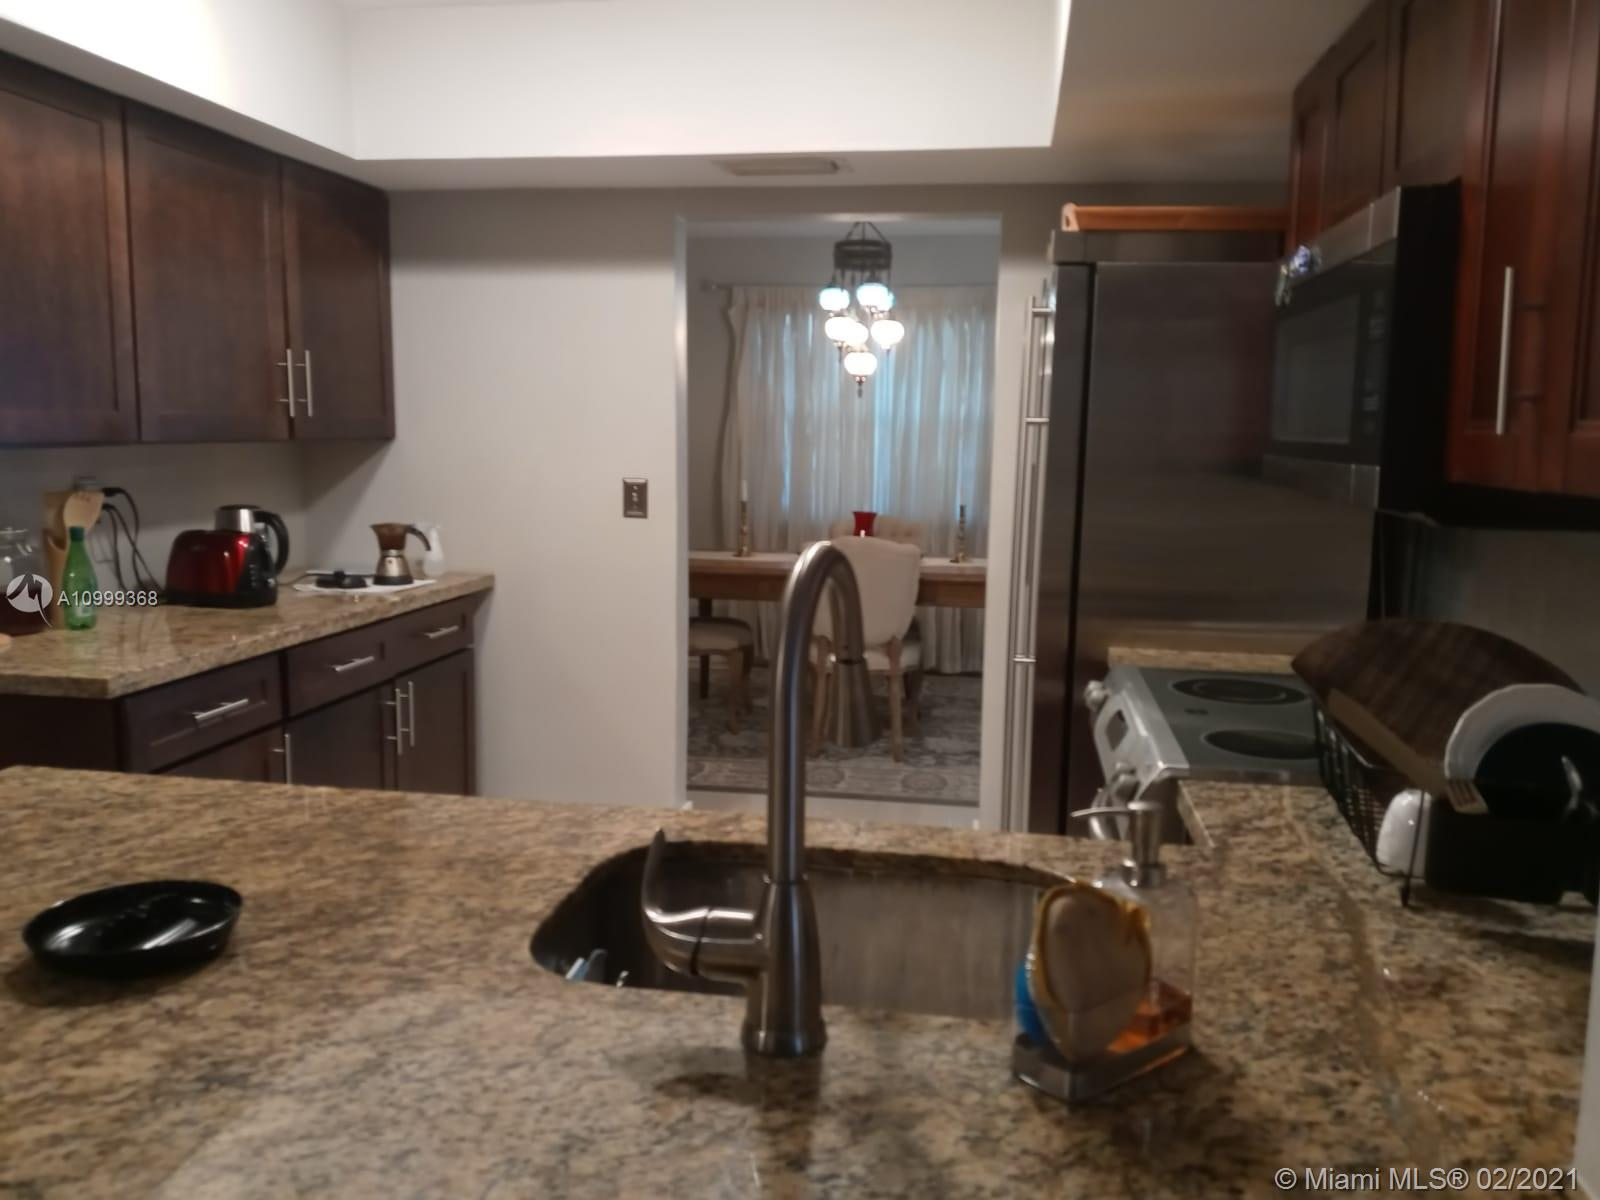 Beautiful one story pool home, 3 bedrooms, two bathrooms, new AC, new washer & dryer, complete updated. Price right to sell fast.